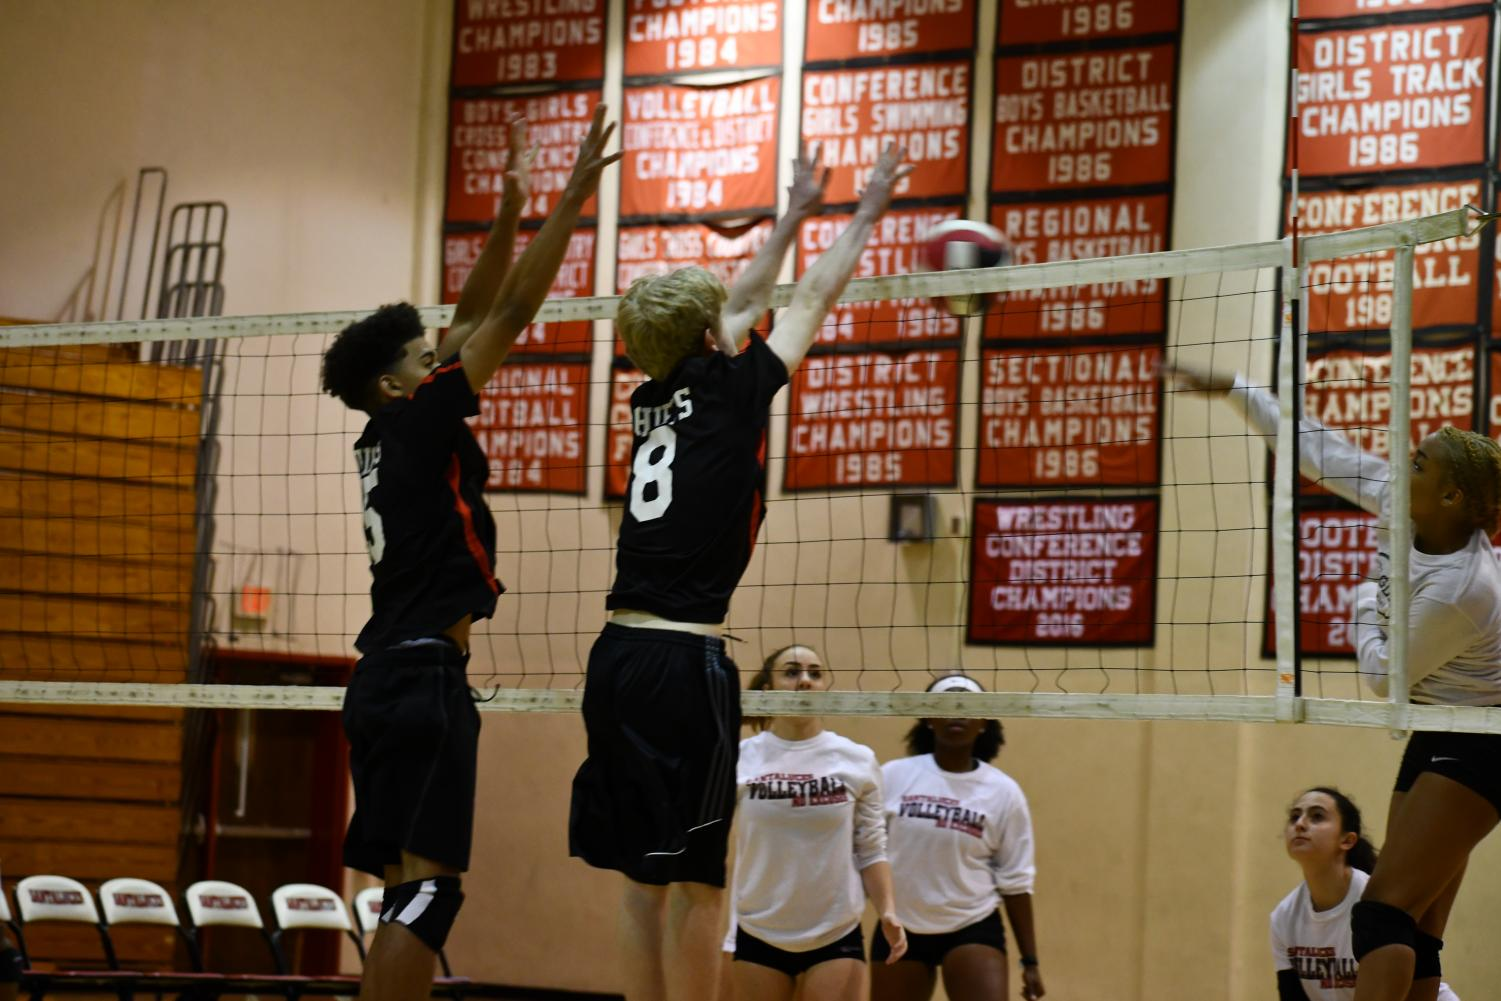 A block against the girls.